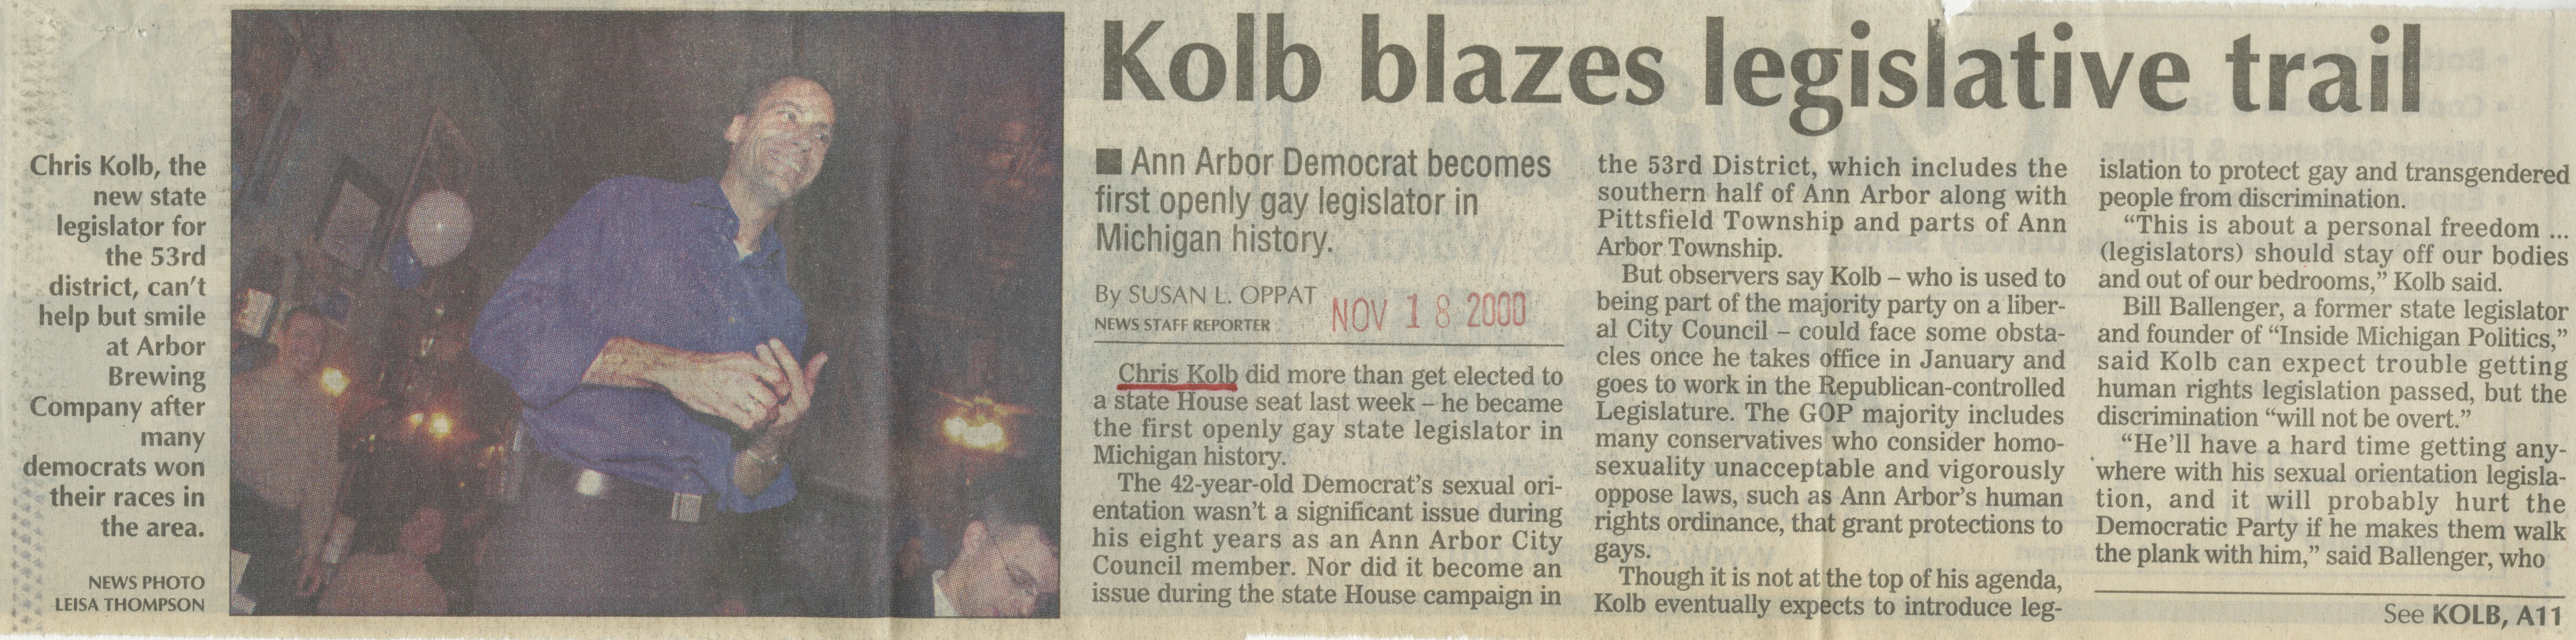 Kolb Blazes Legislative Trail image